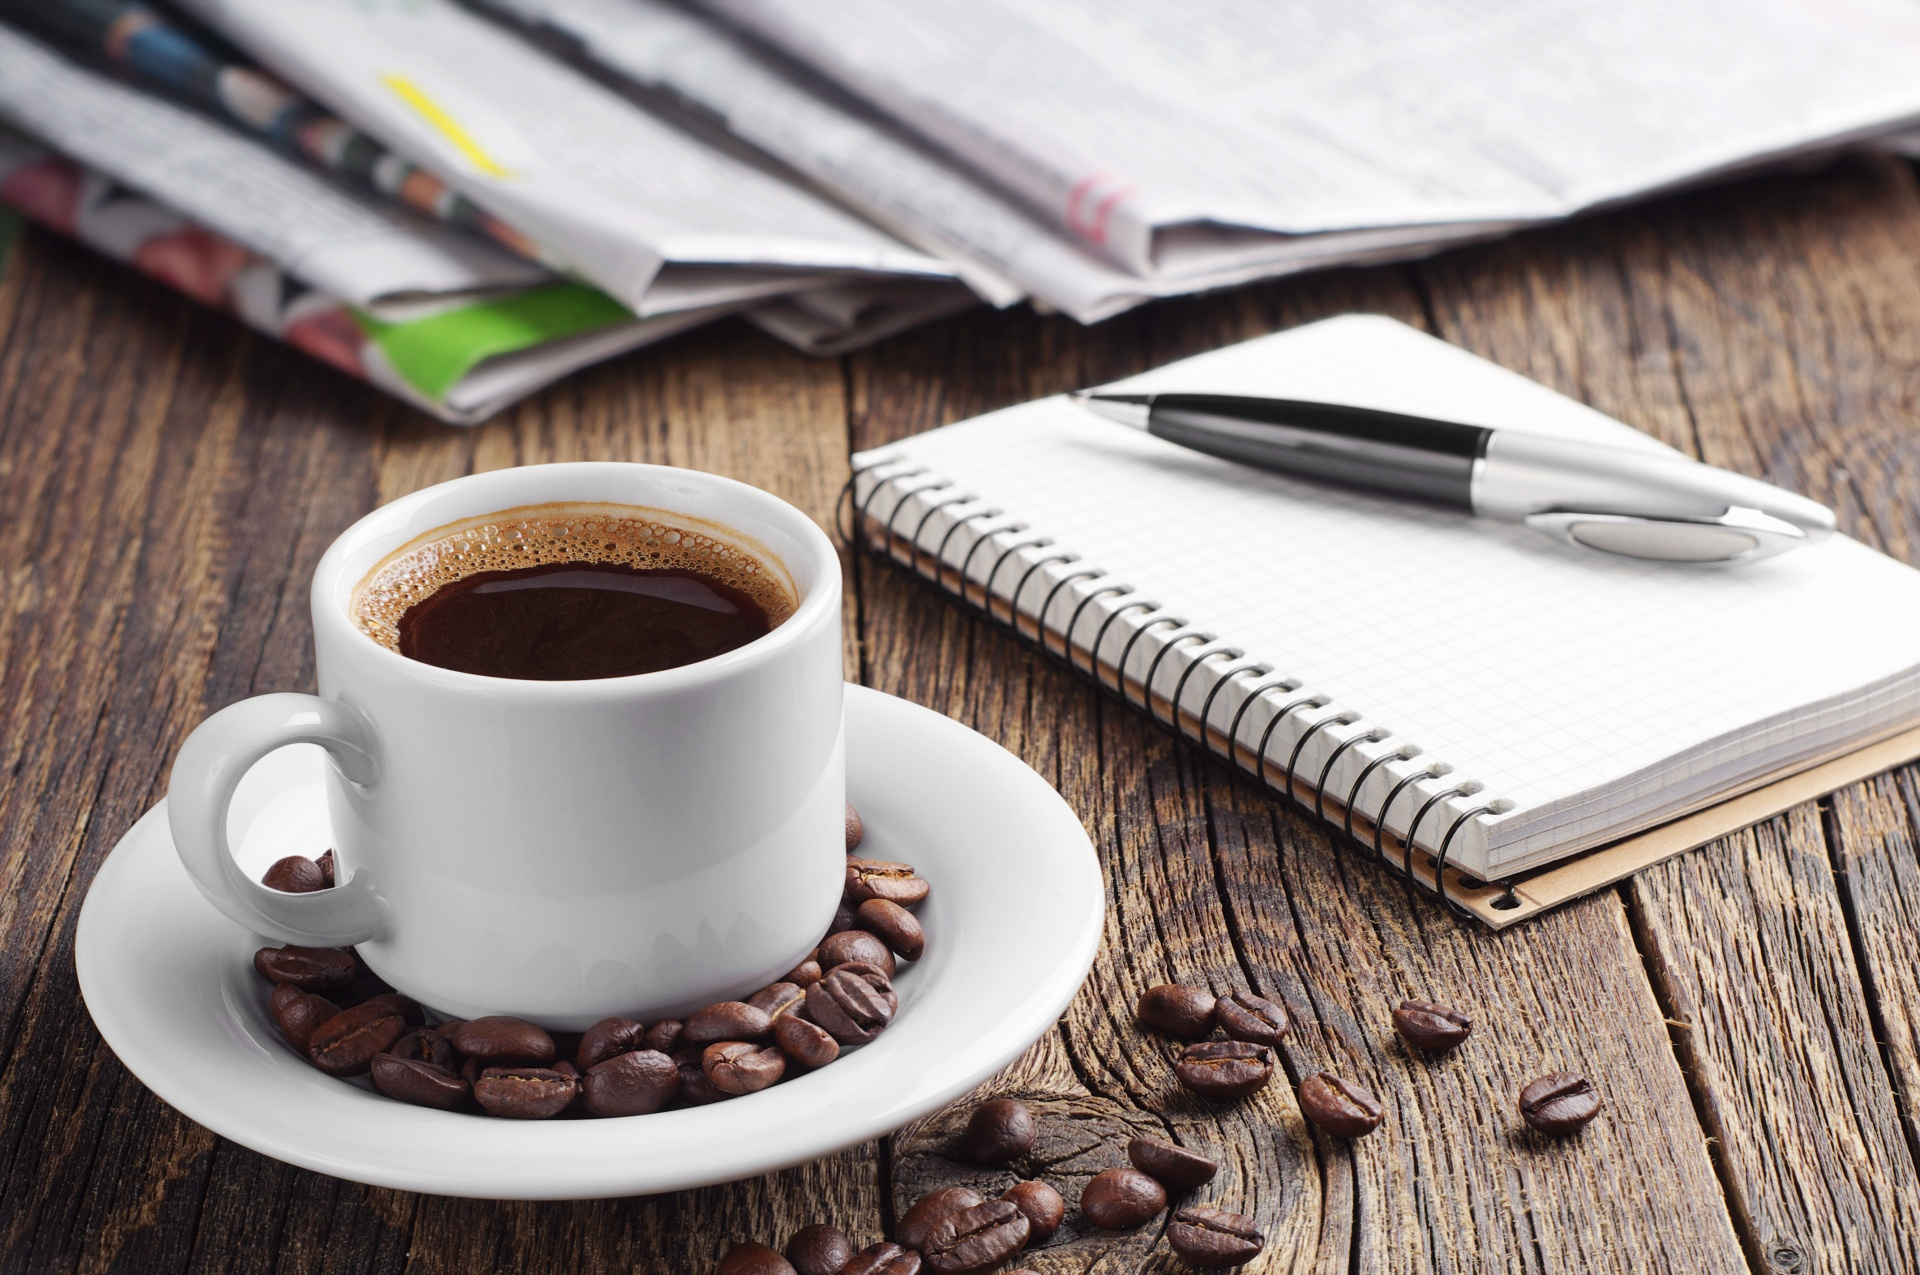 Cup of coffee, newspaper, notepad and pen on old wooden table